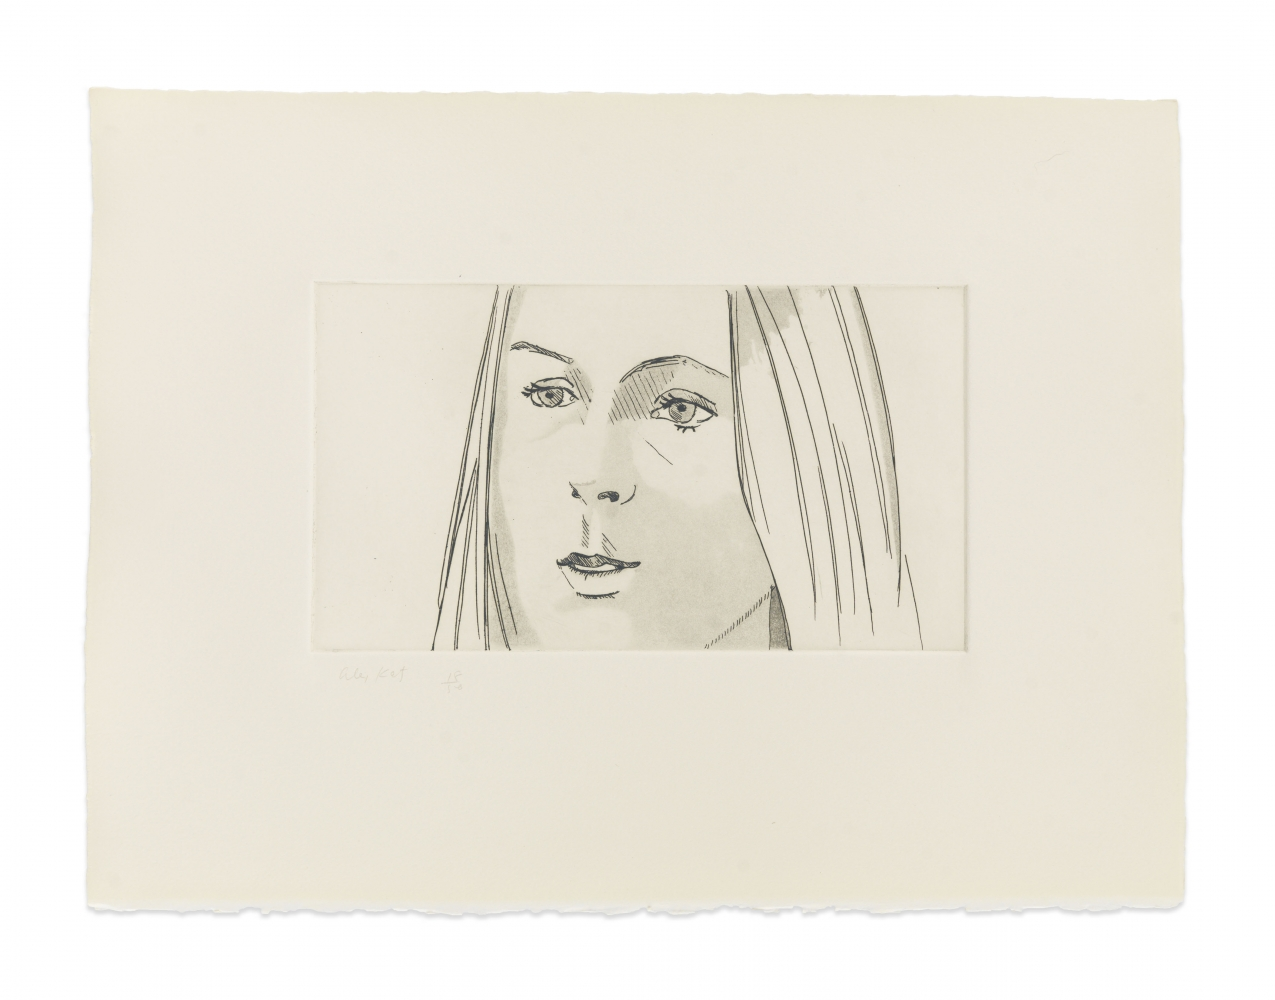 Aquatint by Alex Katz a portrait of a woman with her lips slightly pursed